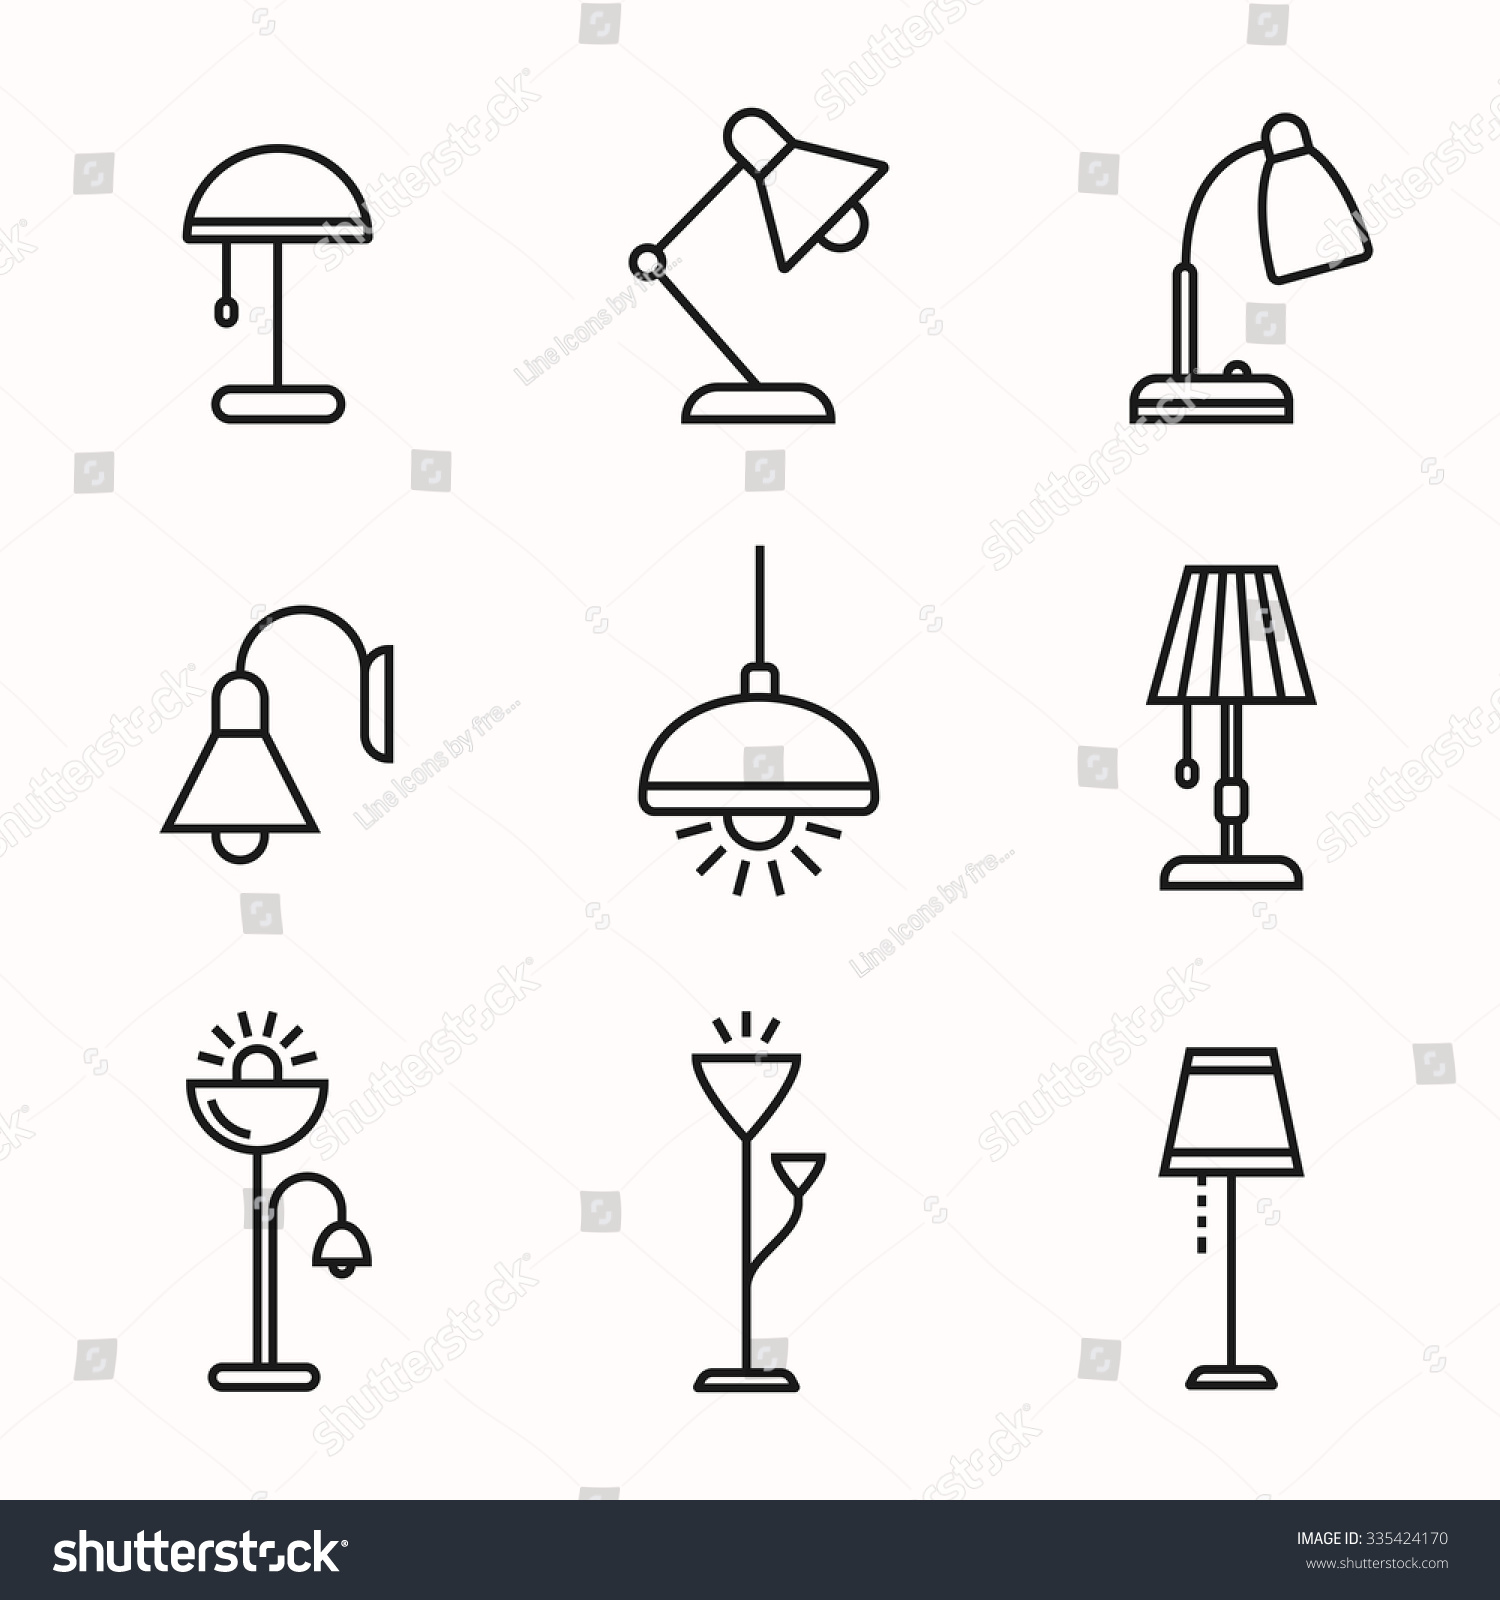 Light Fixture Linear Icon Set. Lamps And Lighting Devices